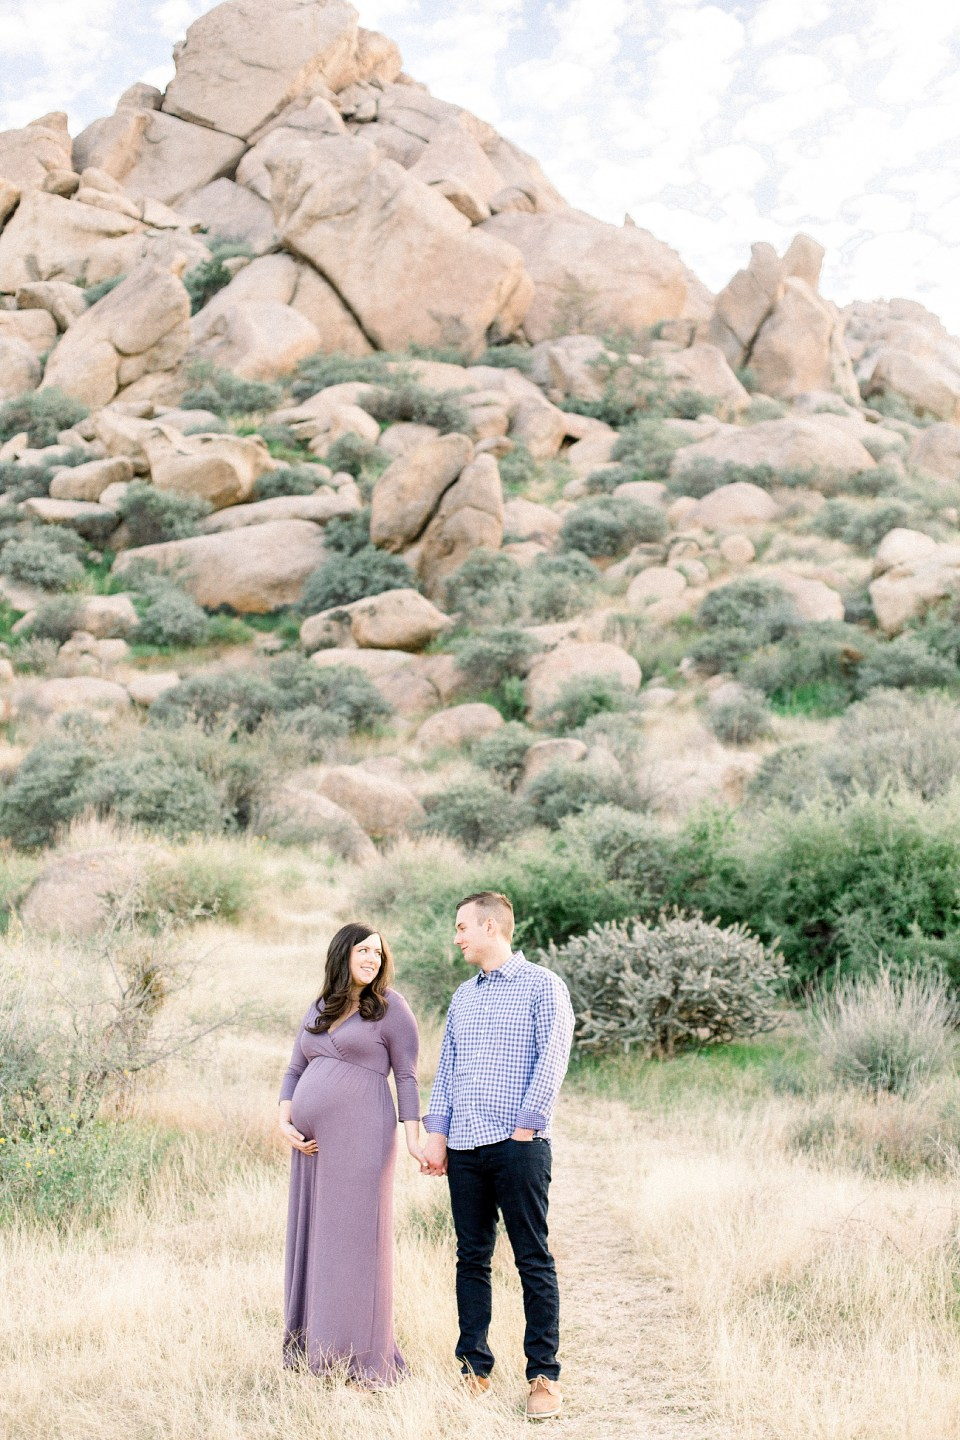 Romantic Scottsdale Maternity Session, Scottsdale Maternity, Arizona Film Maternity Session, Arizona Film Photographer, Arizona Film Maternity, Phoenix Film Maternity, Phoenix Maternity Session, Phoenix Destination Maternity Photographer